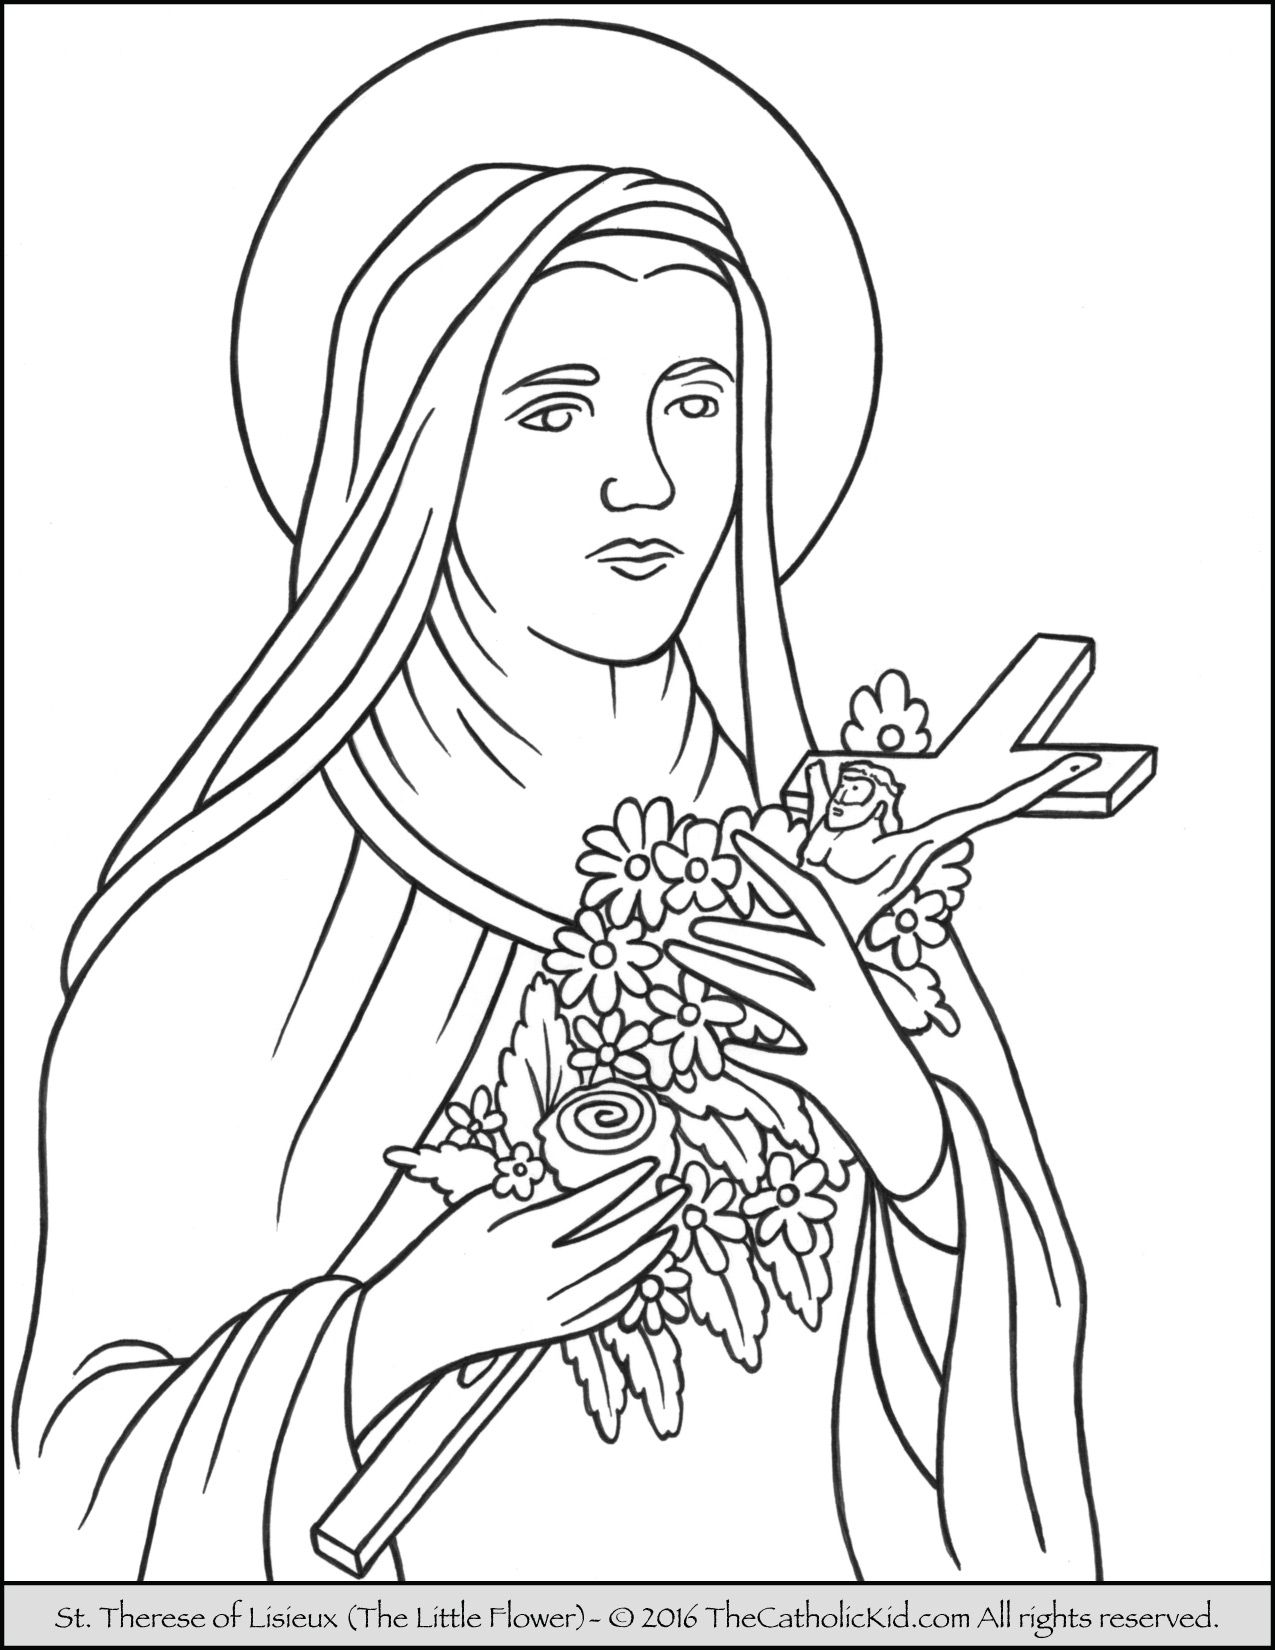 Saint Therese of Lisieux - Little Flower Coloring Page | Catholic ...